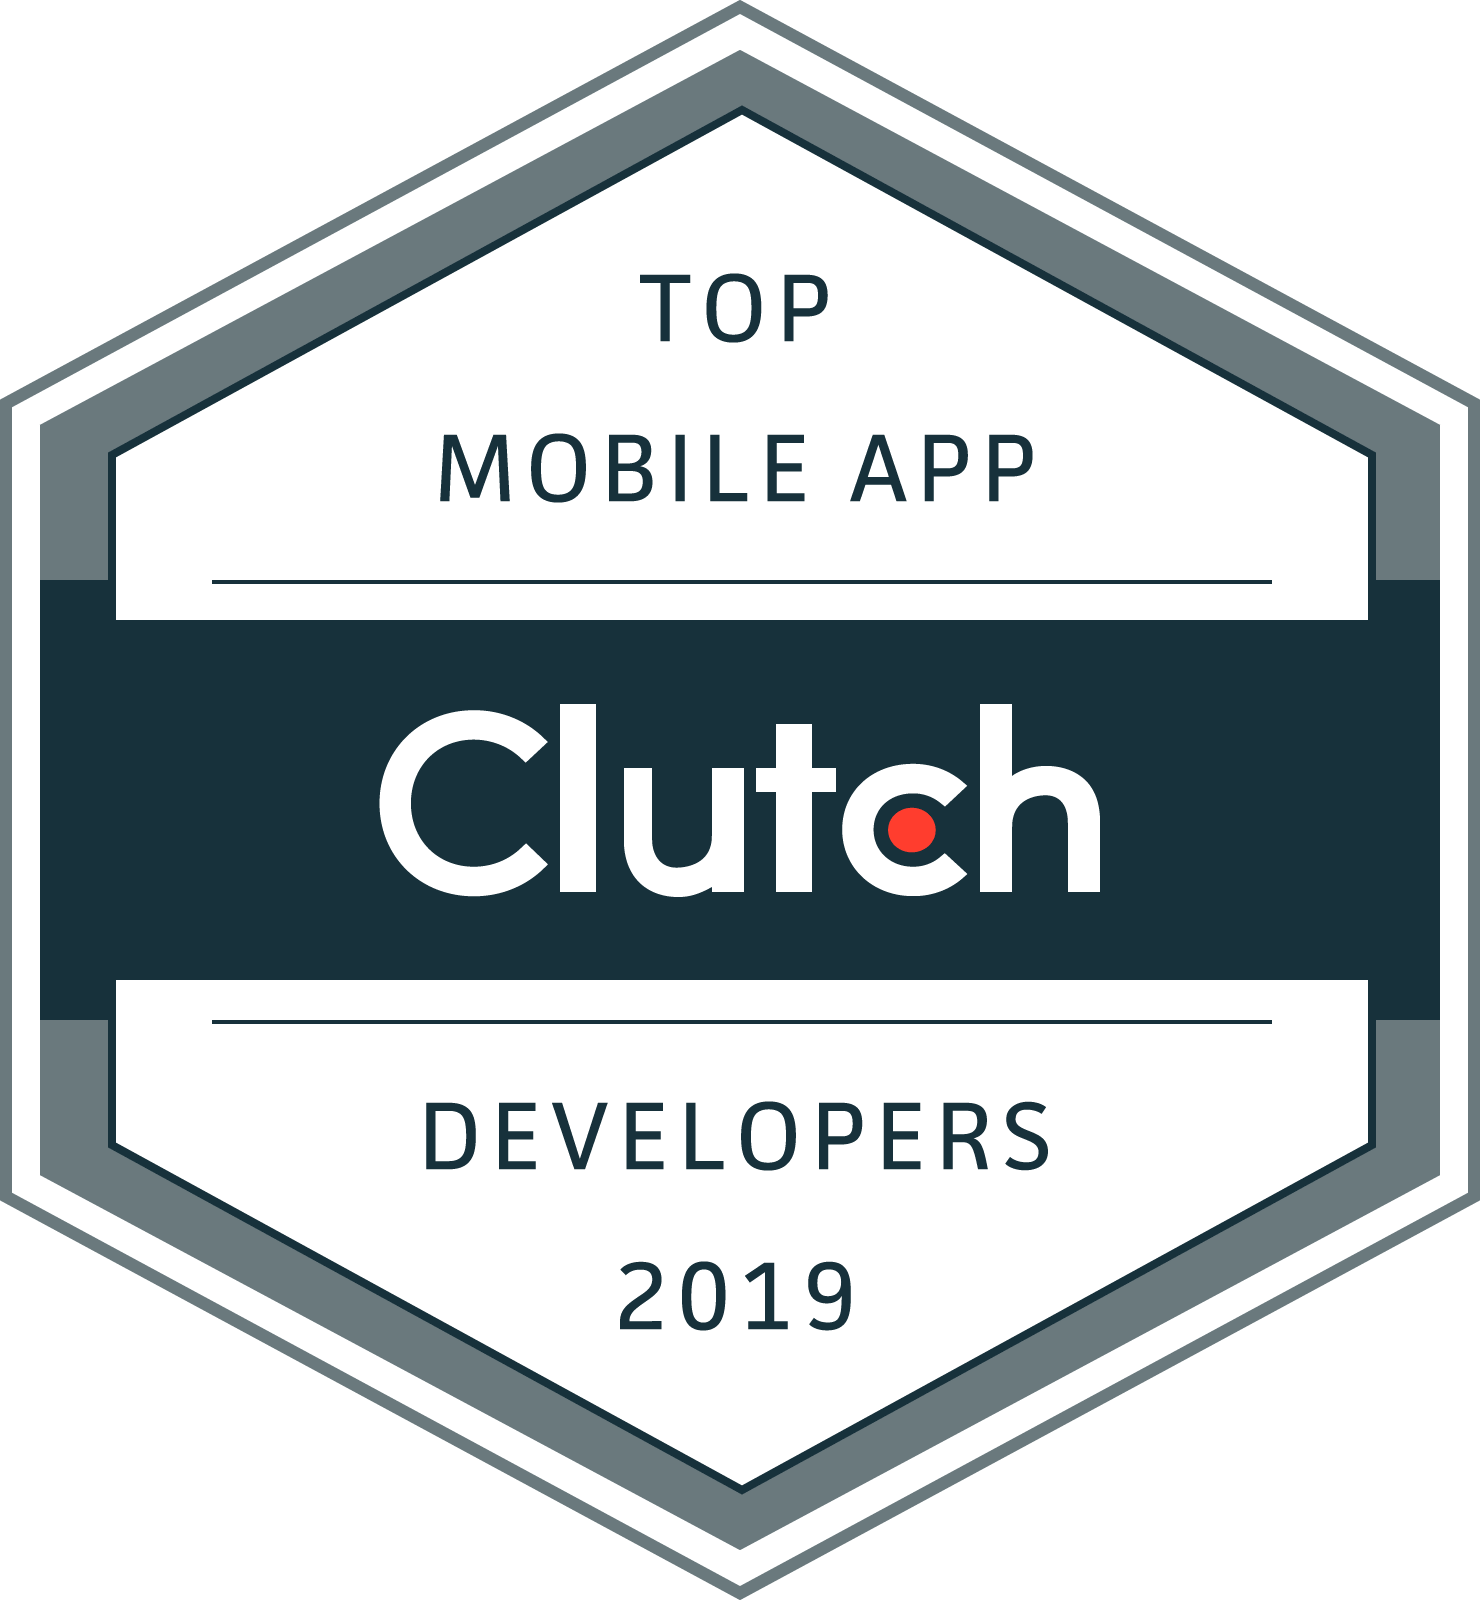 Top Mobile App Developer